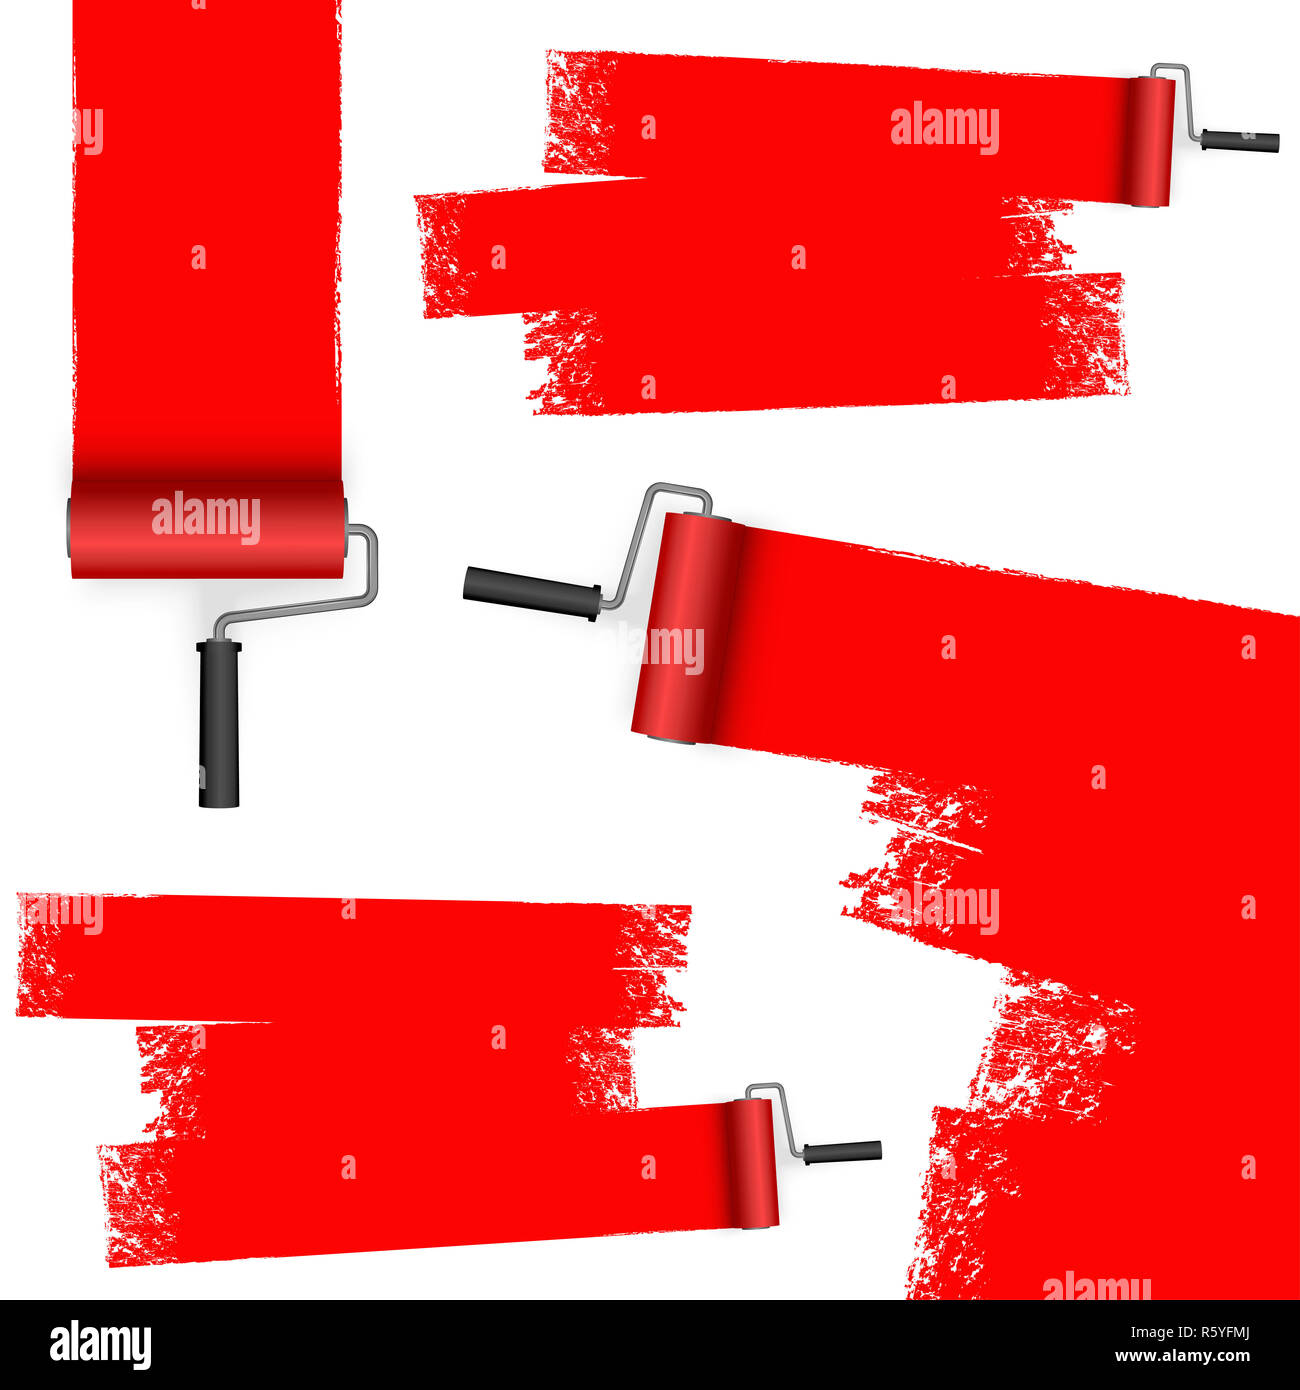 paint roller with marks Stock Photo: 227413106 - Alamy